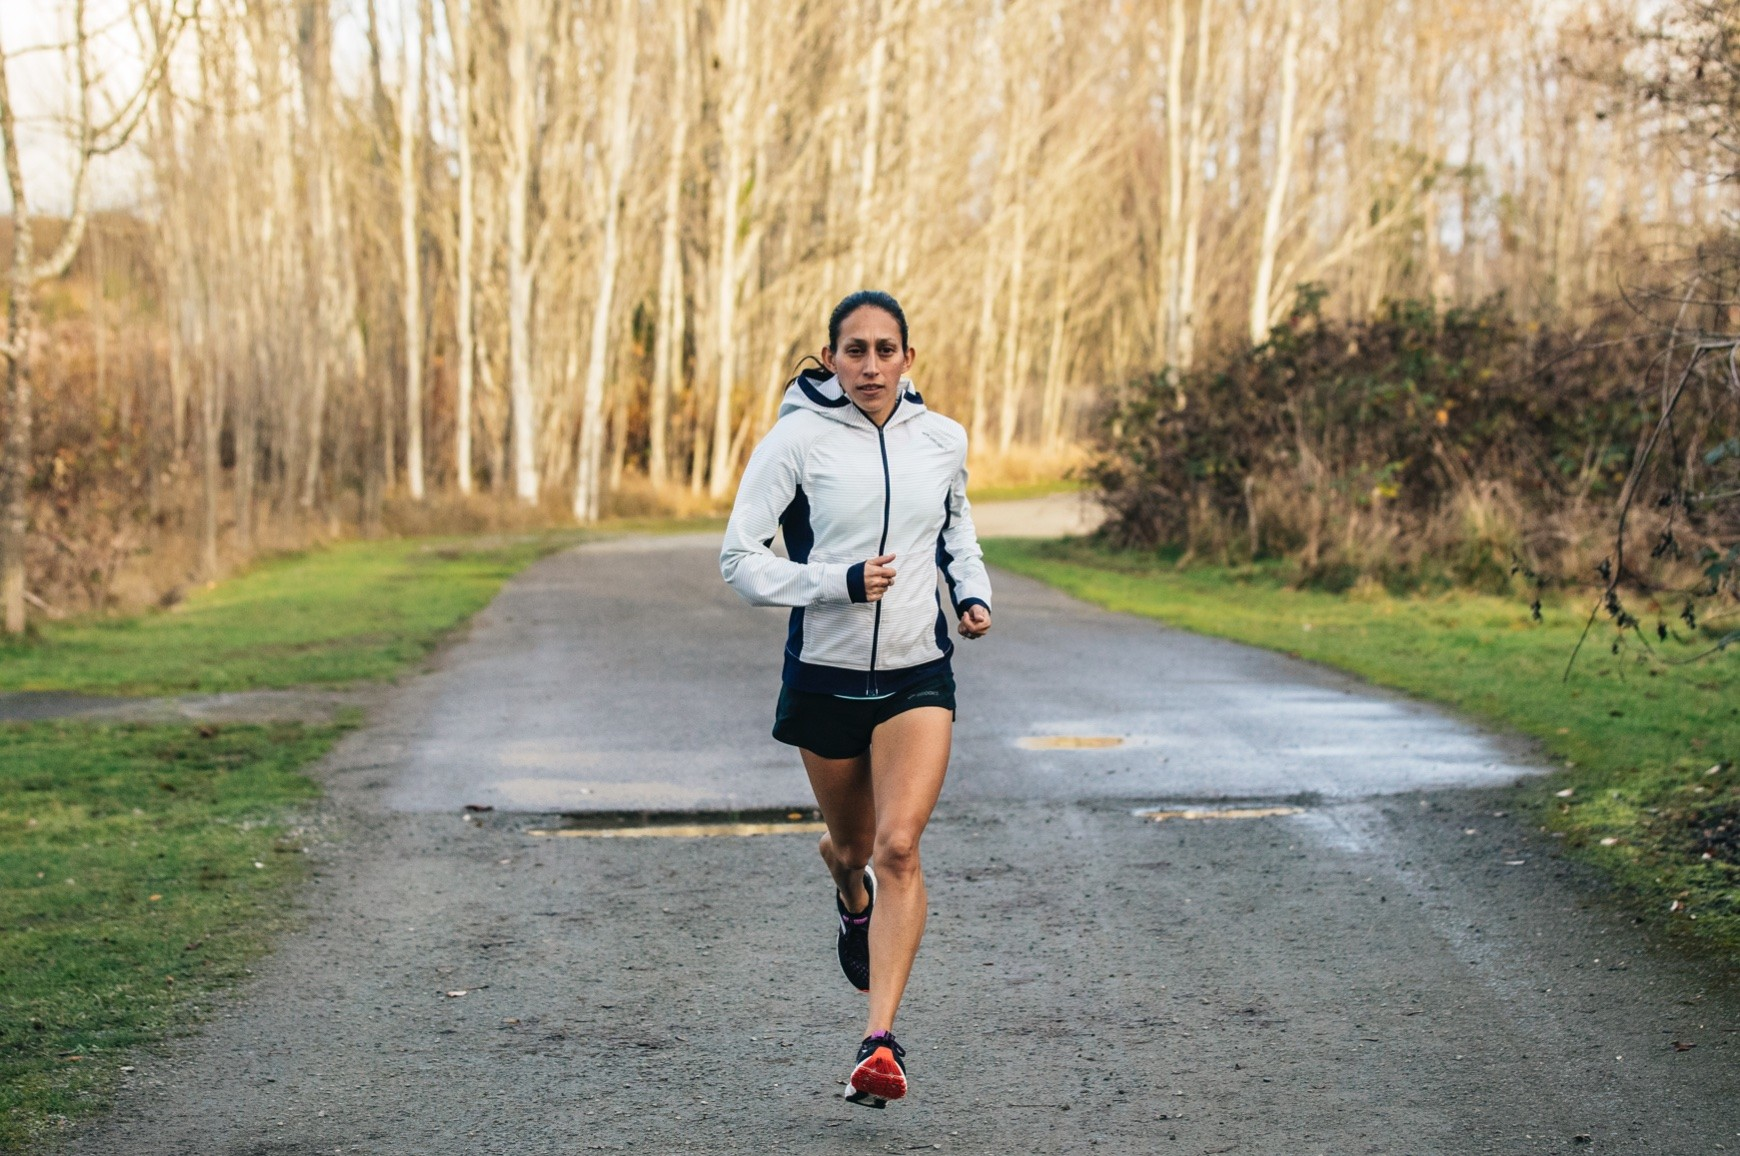 Des Linden will race the U.S. Olympic Trials and the Boston Marathon in 2020